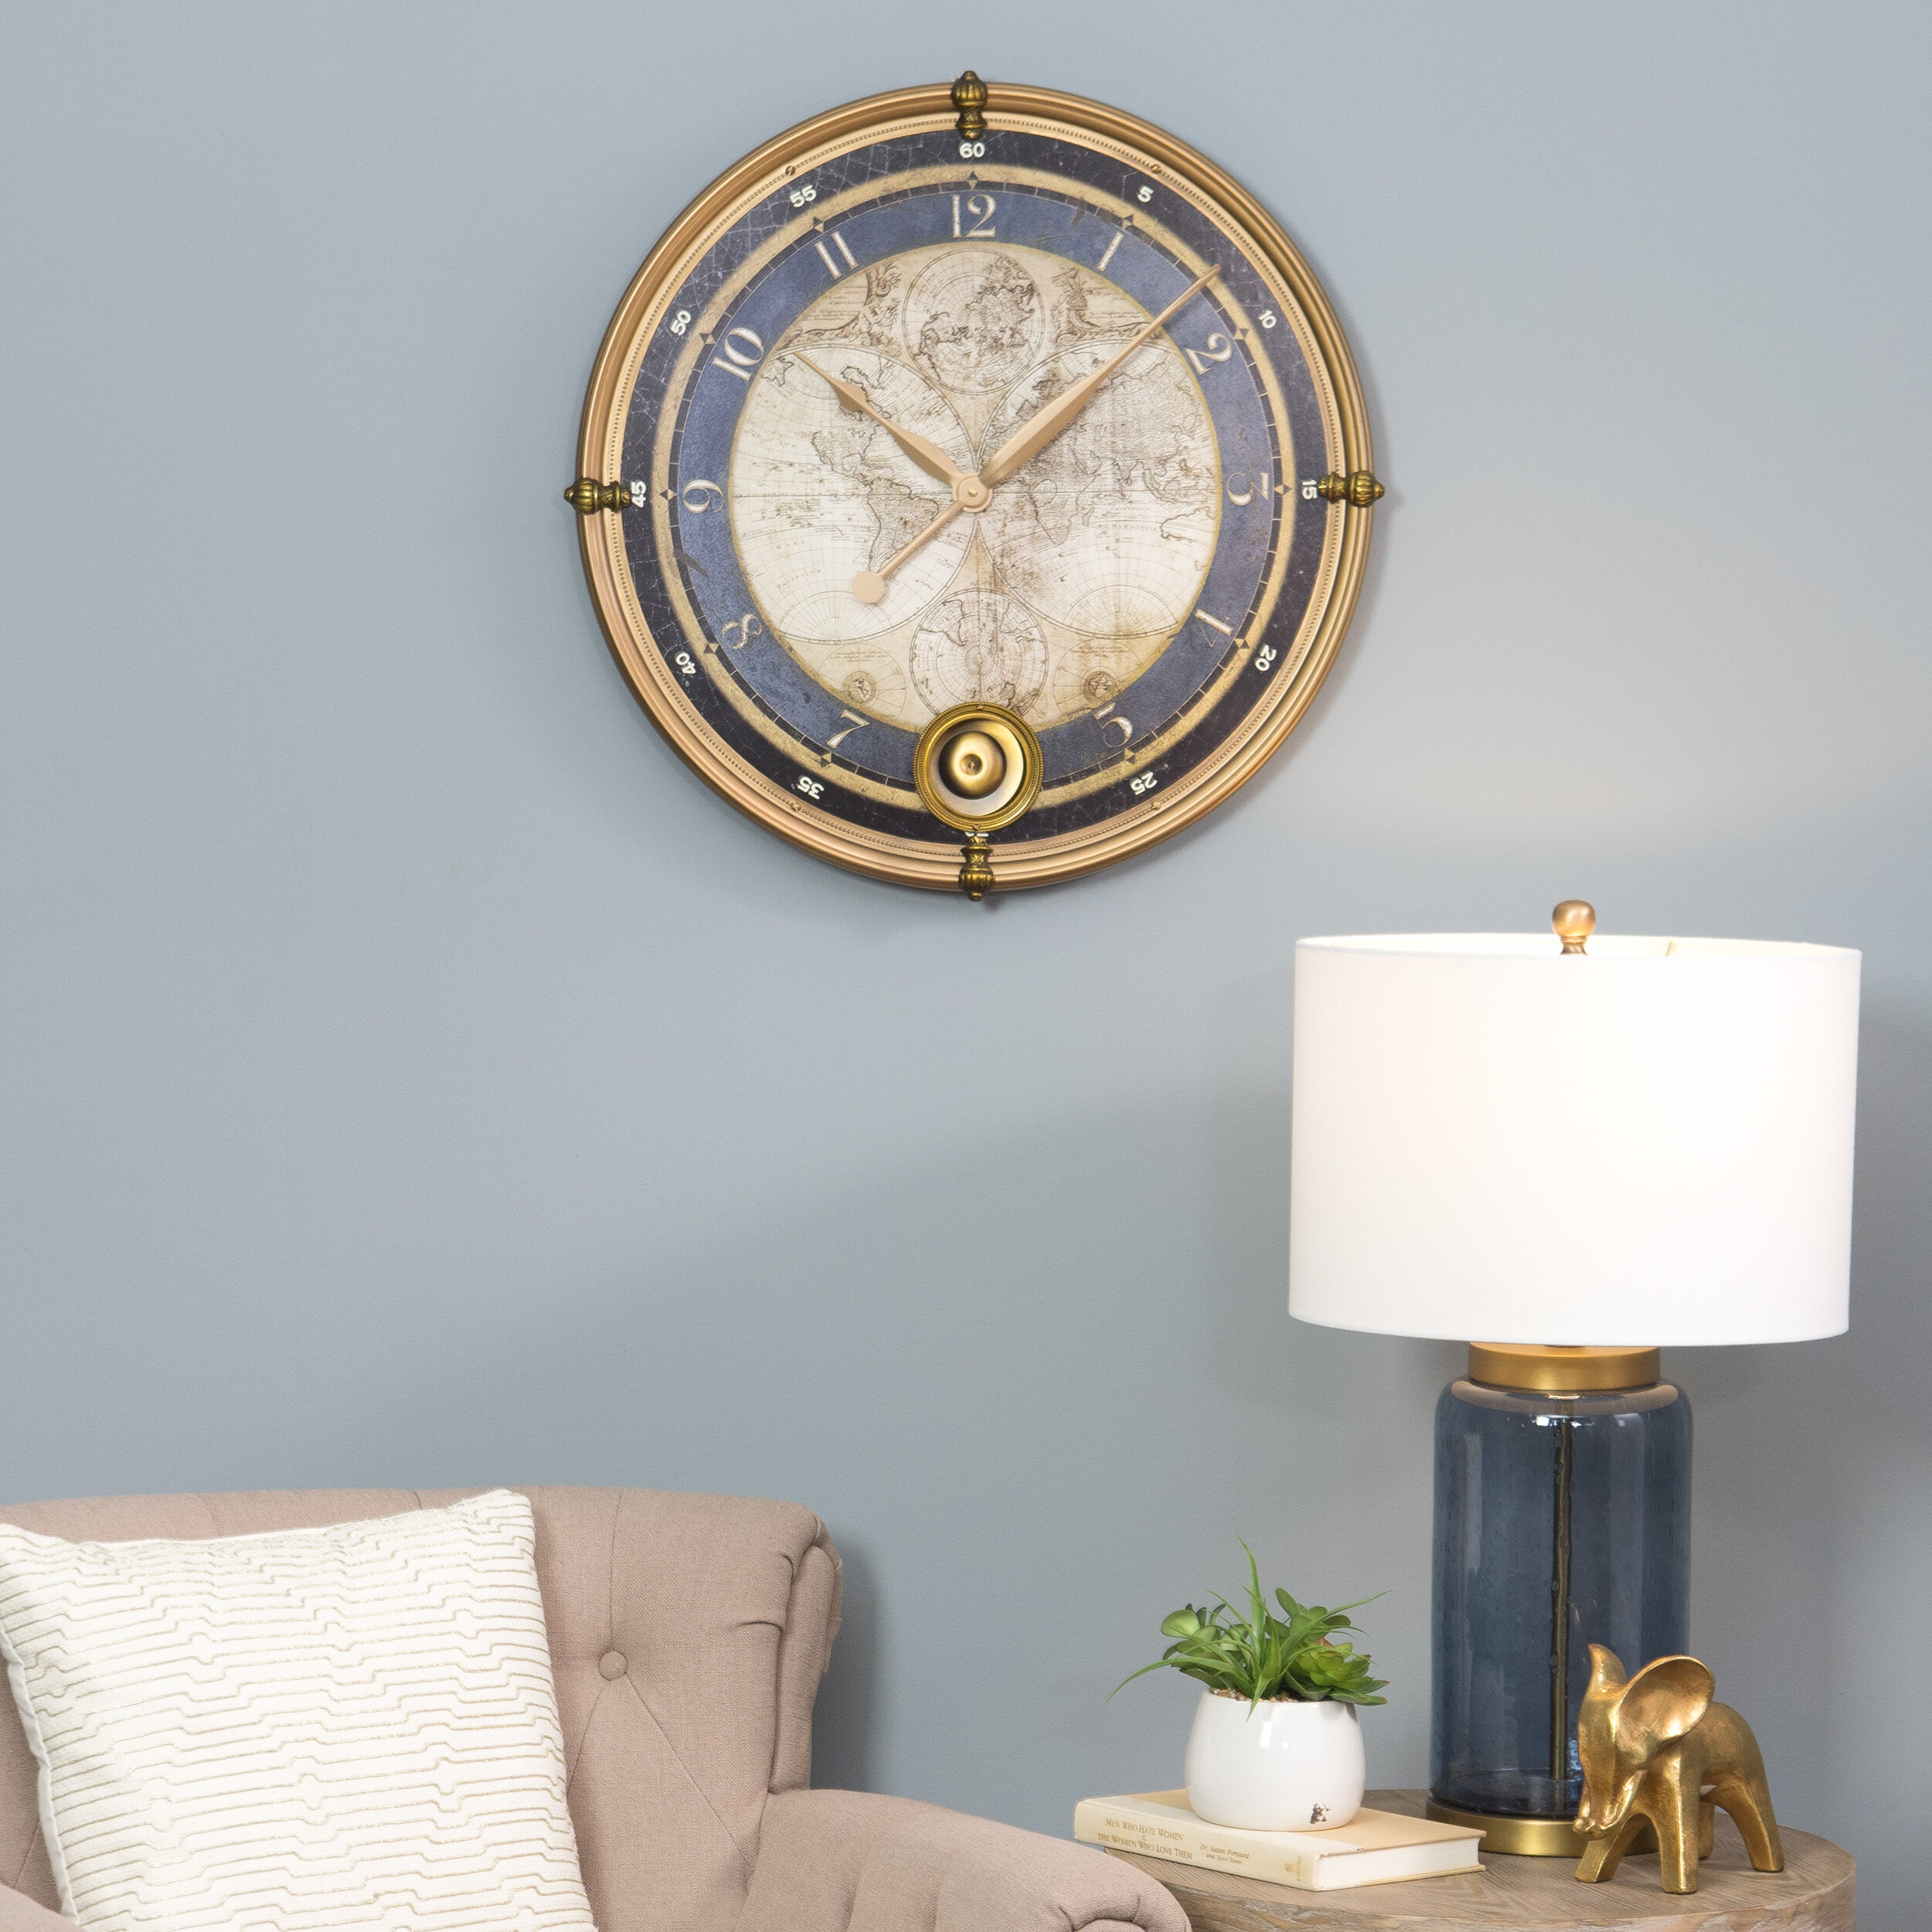 Aspire 23 ramona old map wall clock reviews wayfair gumiabroncs Image collections